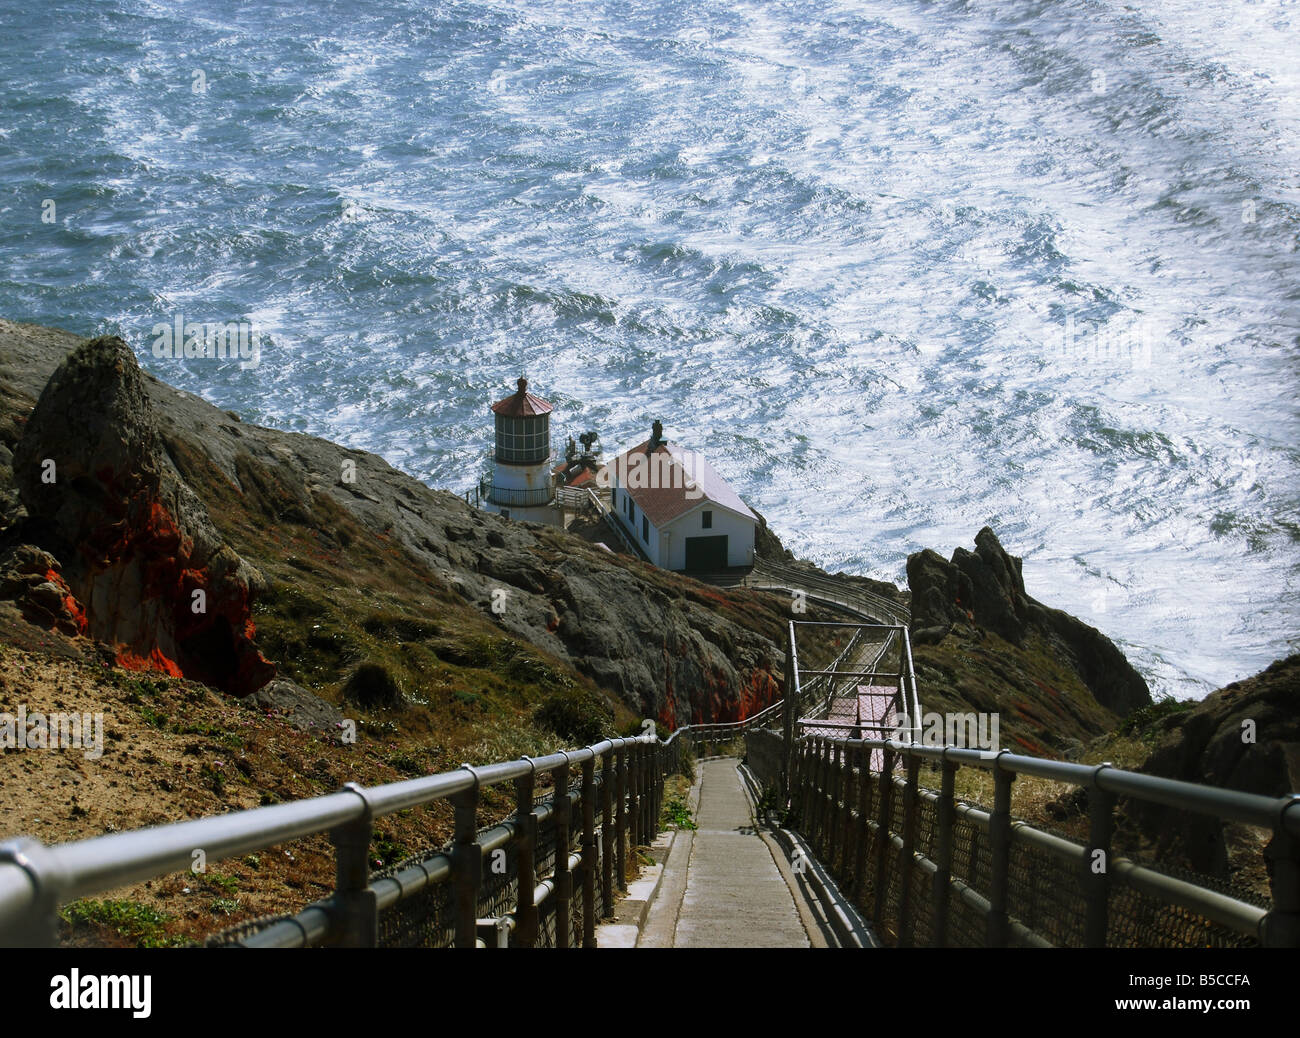 Point Reyes Lighthouse, Point Reyes, California - Stock Image